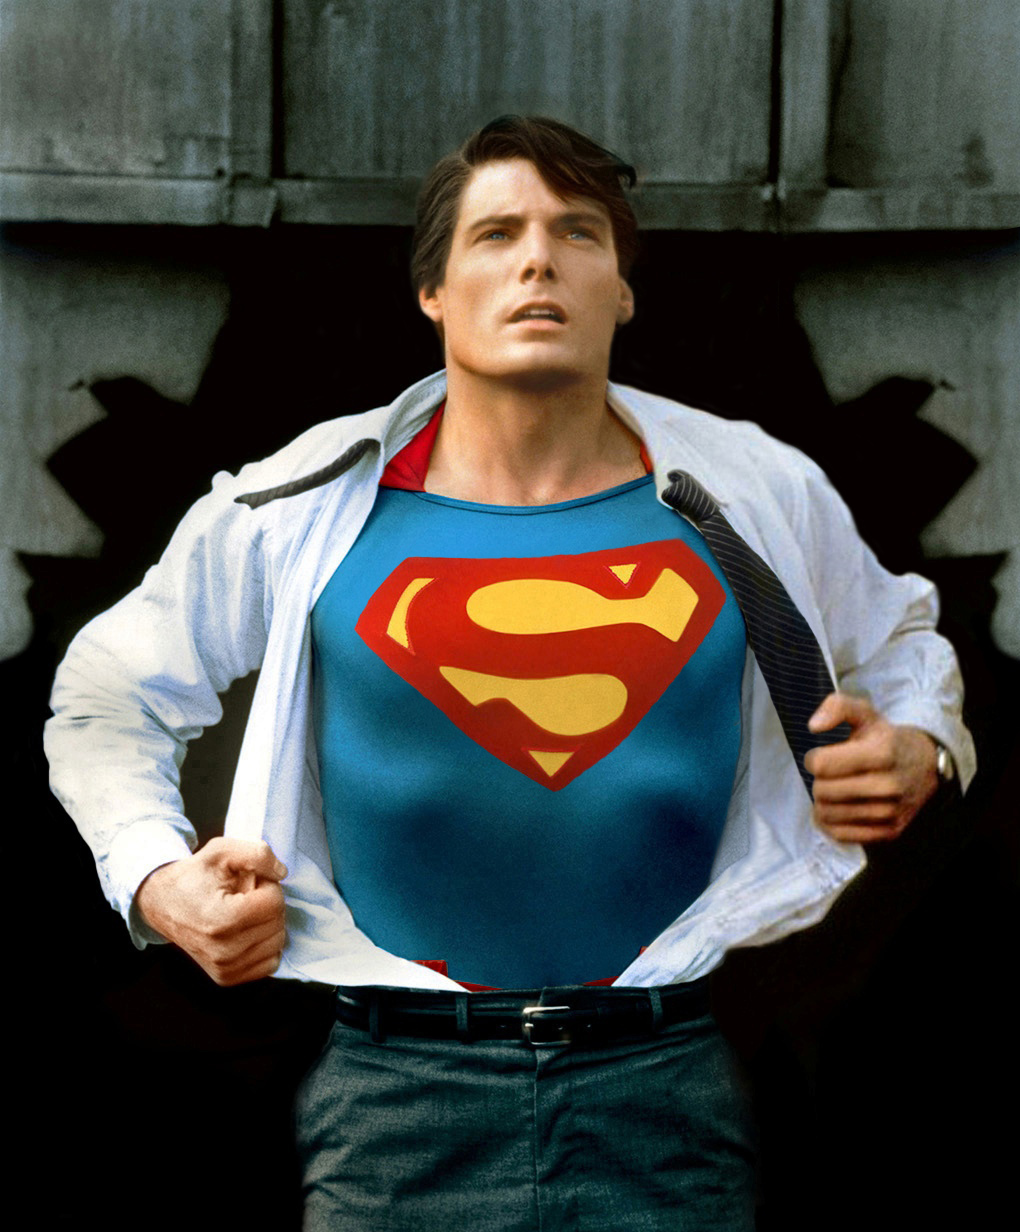 http://images6.fanpop.com/image/photos/35400000/Christopher-Reeve-Superman-A-classic-photo-recently-restored-superman-the-movie-35485219-1020-1232.jpg